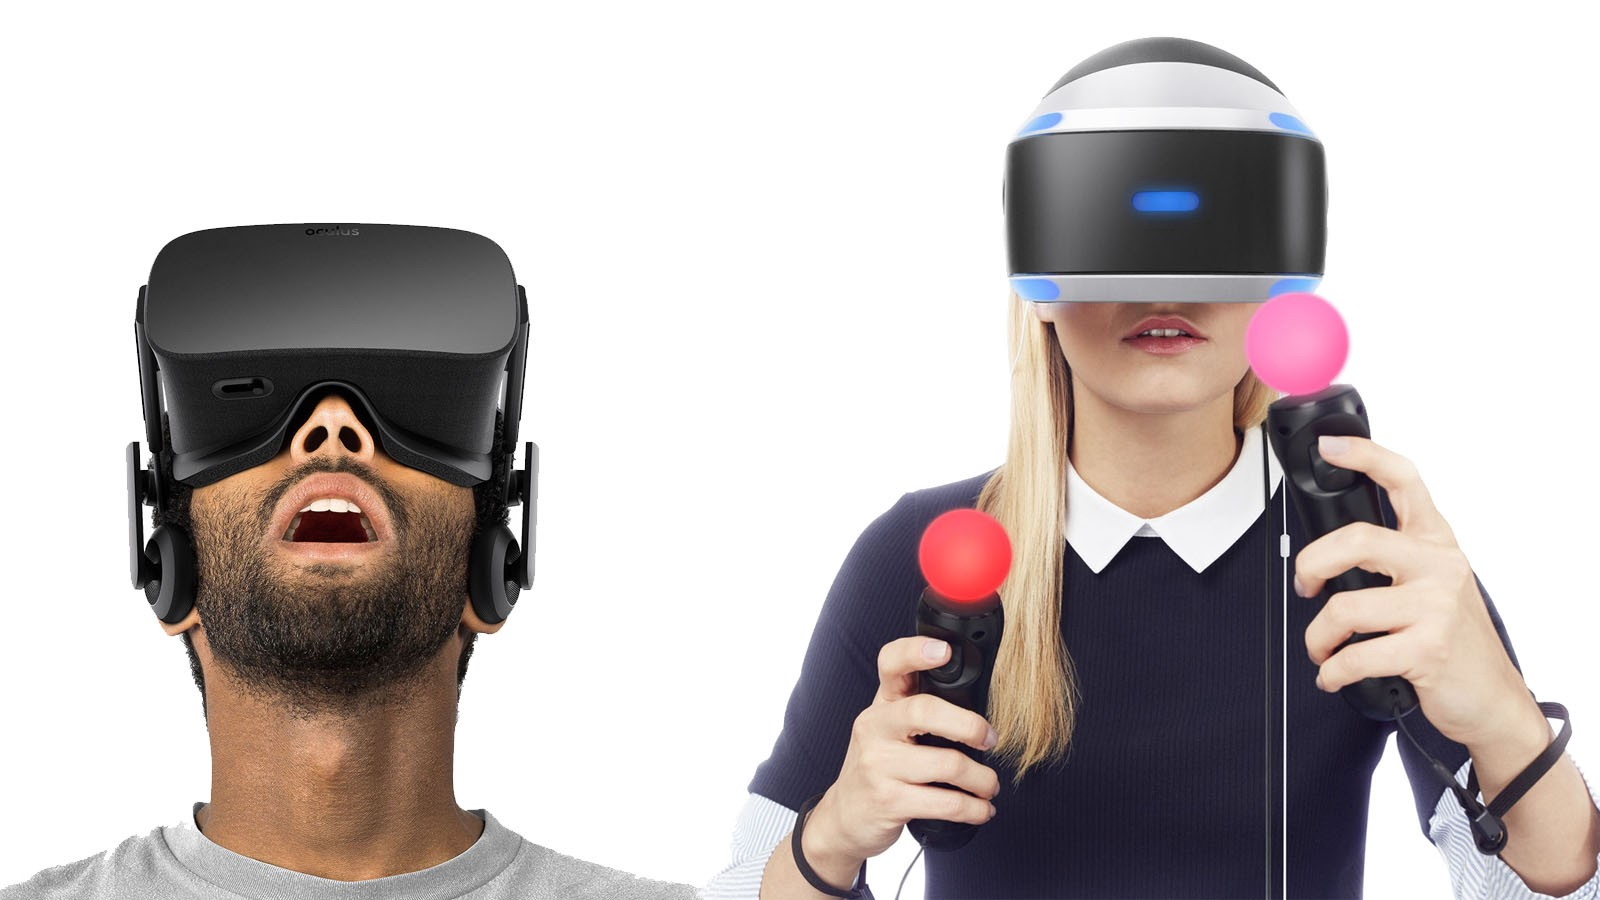 a60c4c089f39 PlayStation VR sales crushing Oculus Rift and HTC Vive